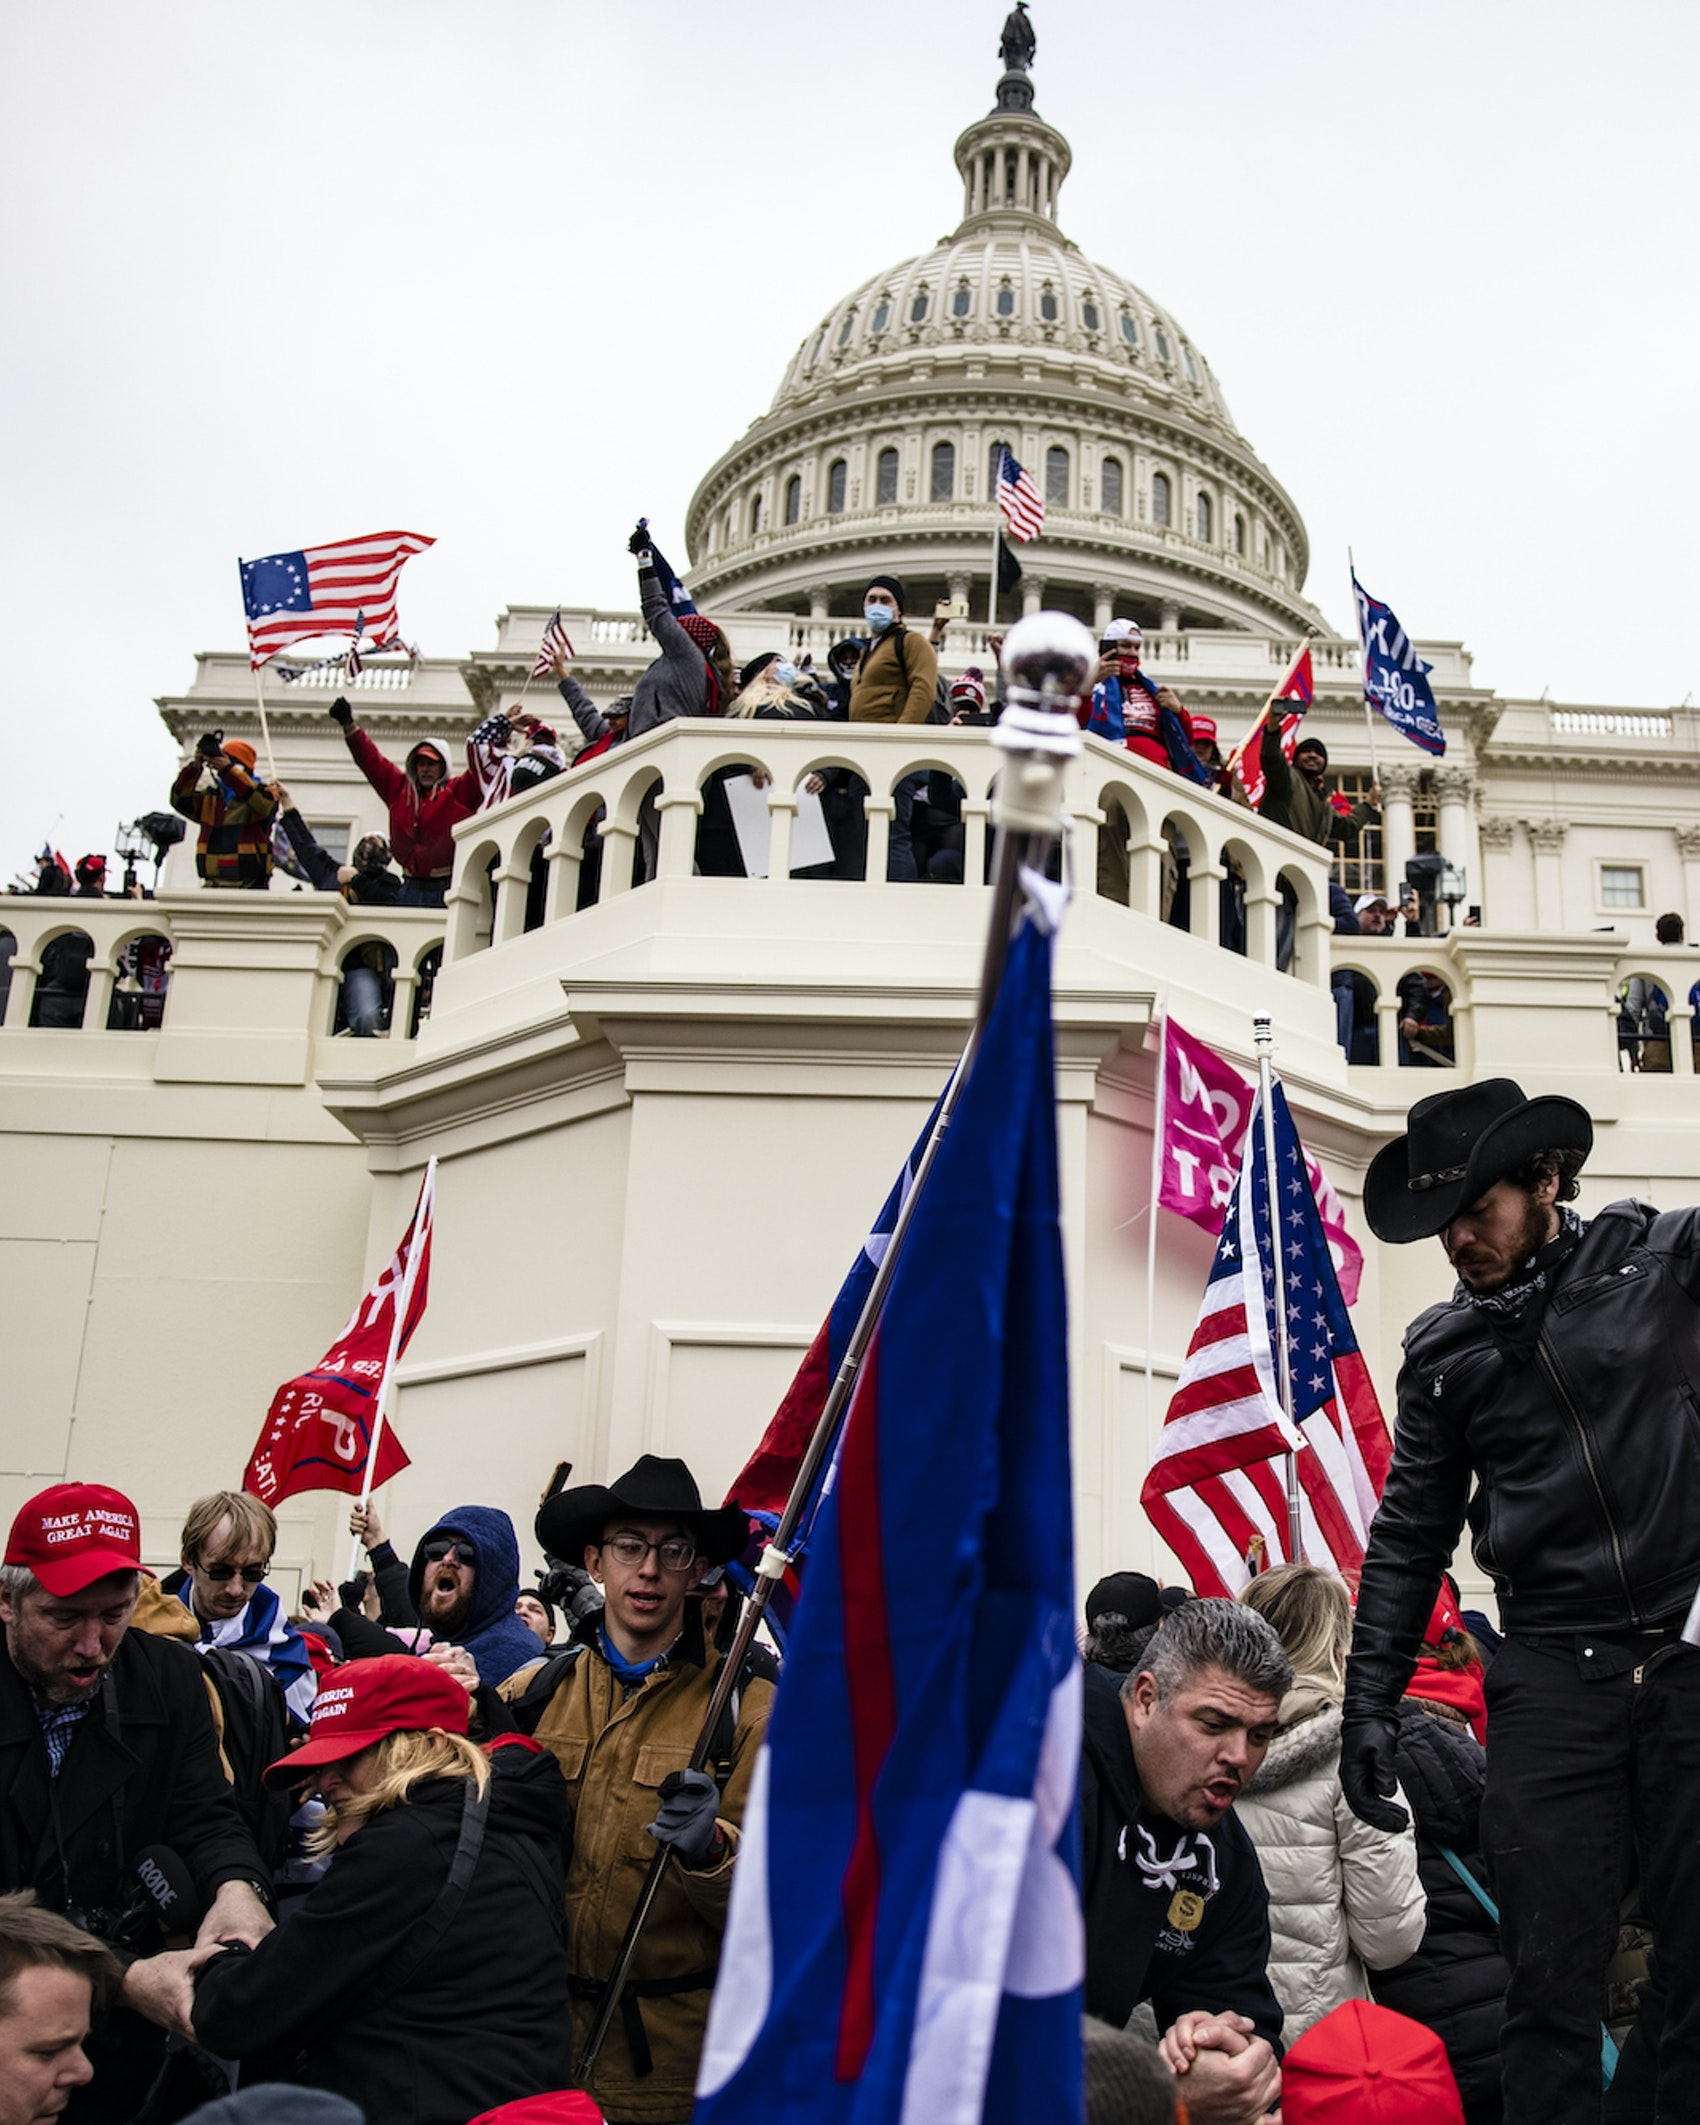 Pro-Trump supporters storm the US Capitol following a rally with President Donald Trump on January 6, 2021 in Washington, DC. Trump supporters gathered in the nation's capital today to protest the ratification of President-elect Joe Biden's Electoral College victory over President Trump in the 2020 election. (Photo by Samuel Corum/Getty Images)